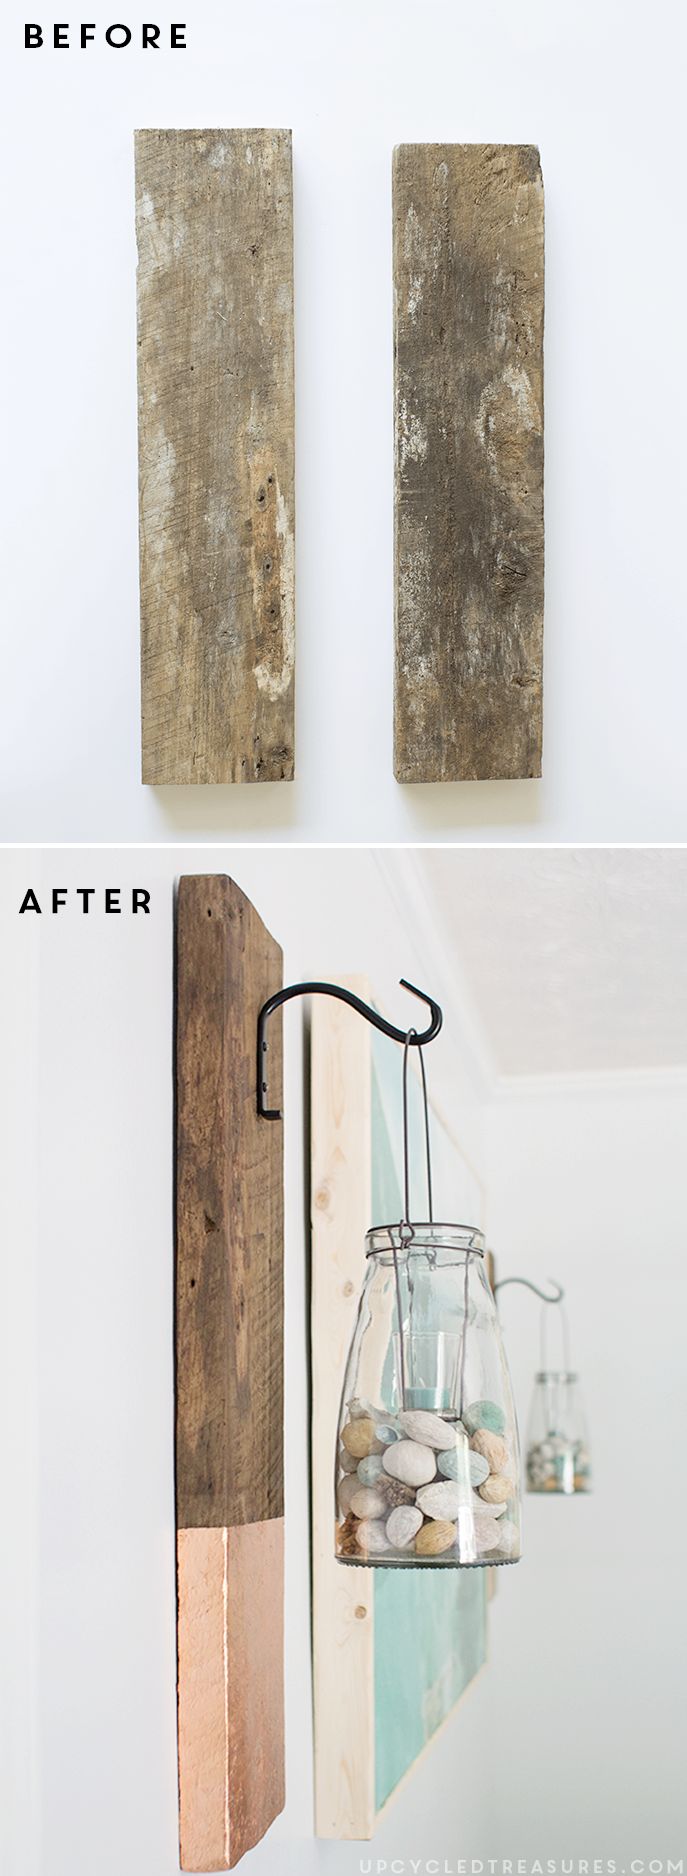 How To Create A Modern Rustic Wall Hanging Diy Wall Decor Diy Wall Rustic Wall Decor